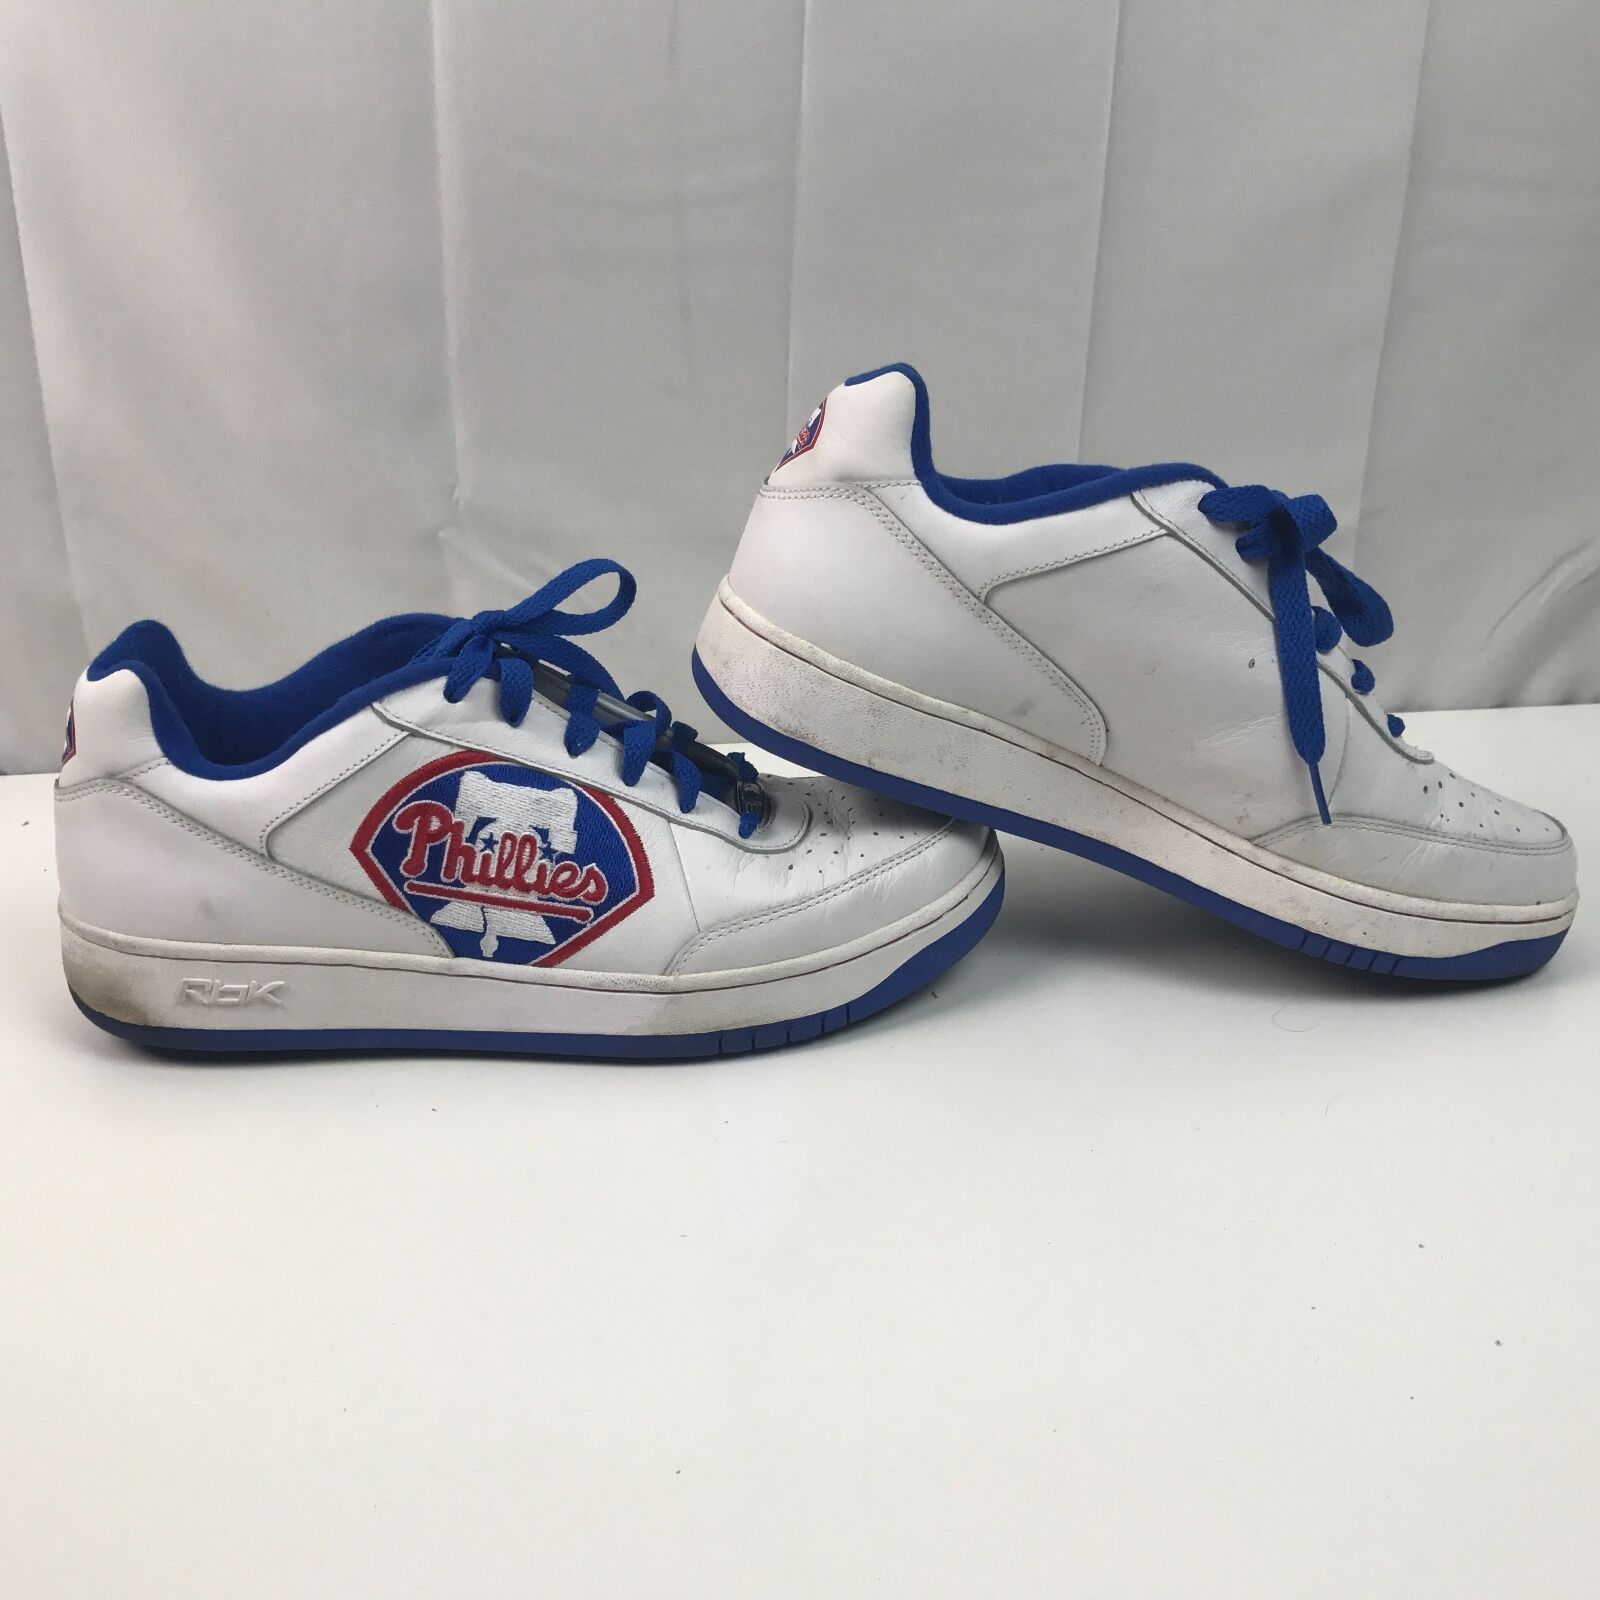 Vtg MLB Reebok Philadelphia Phillies Authentic Collection Tennis Shoes 11.5